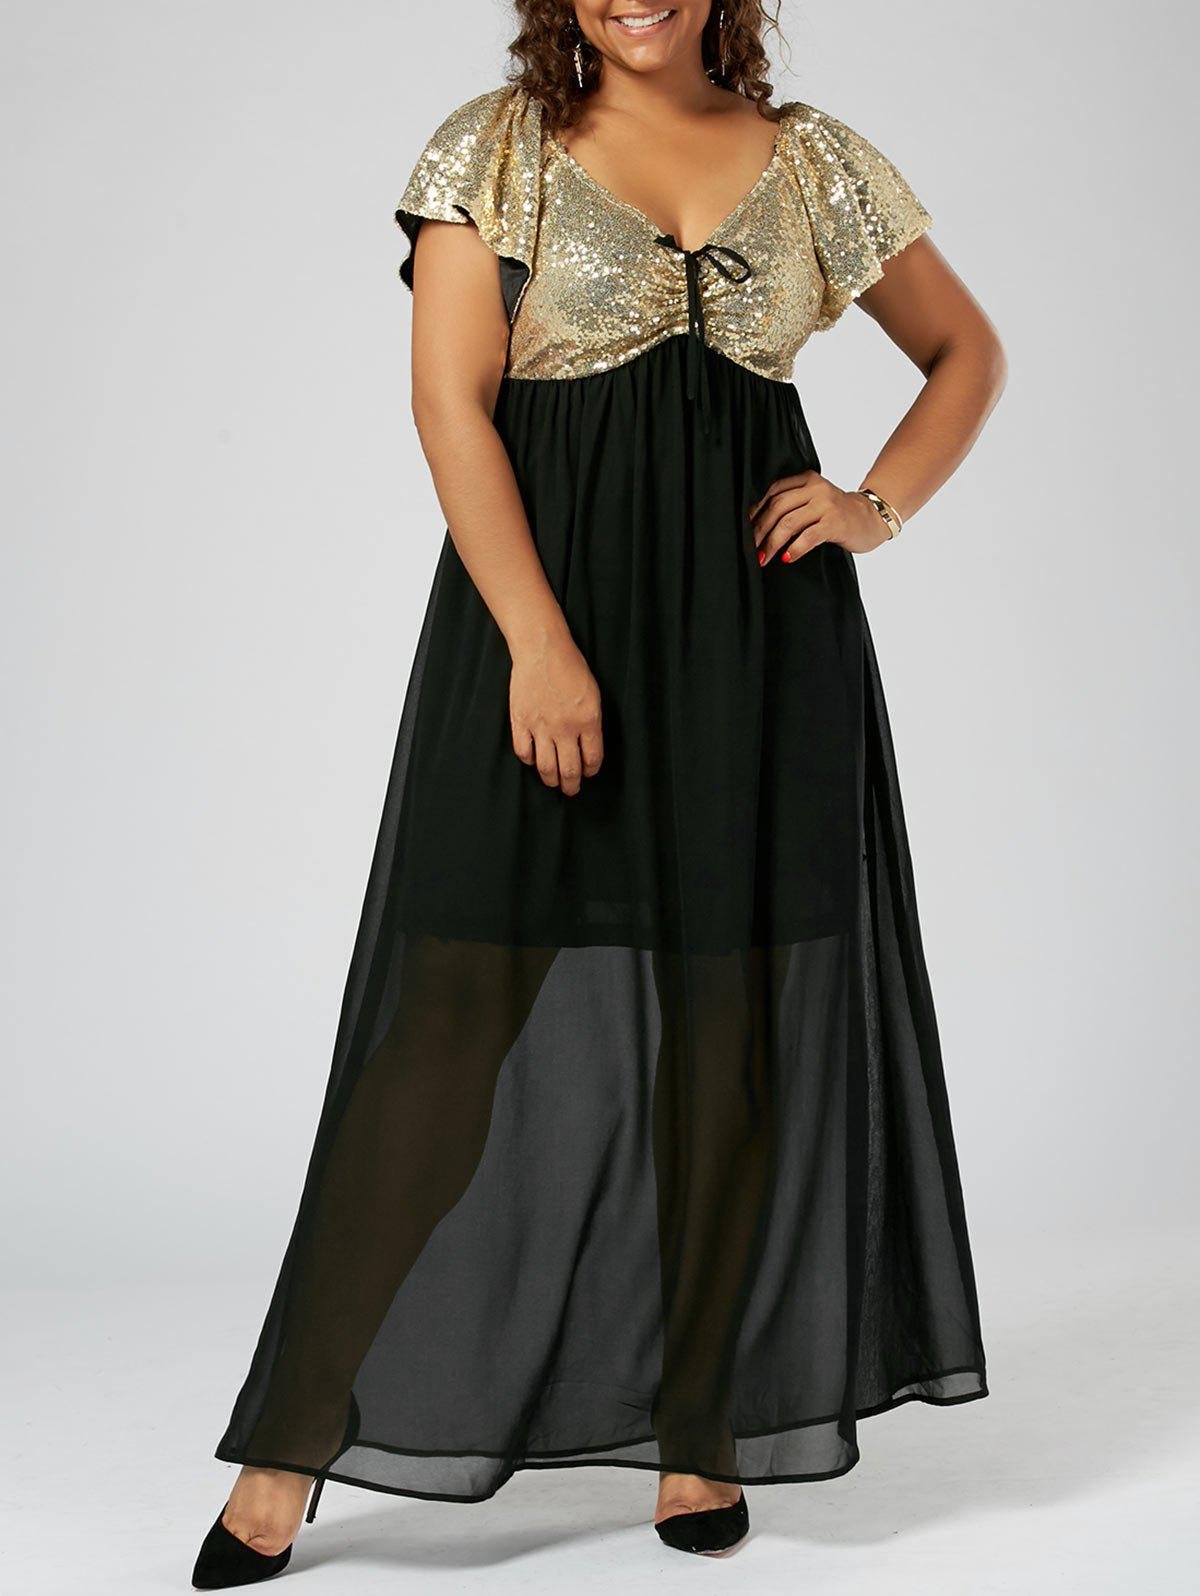 Plus Size Sequins Maxi Flowy Prom DressWOMEN<br><br>Size: 5XL; Color: GOLDEN; Style: Brief; Material: Polyester; Silhouette: A-Line; Dresses Length: Ankle-Length; Neckline: V-Neck; Sleeve Length: Short Sleeves; Pattern Type: Solid; With Belt: No; Season: Summer; Weight: 0.4900kg; Package Contents: 1 x Dress;